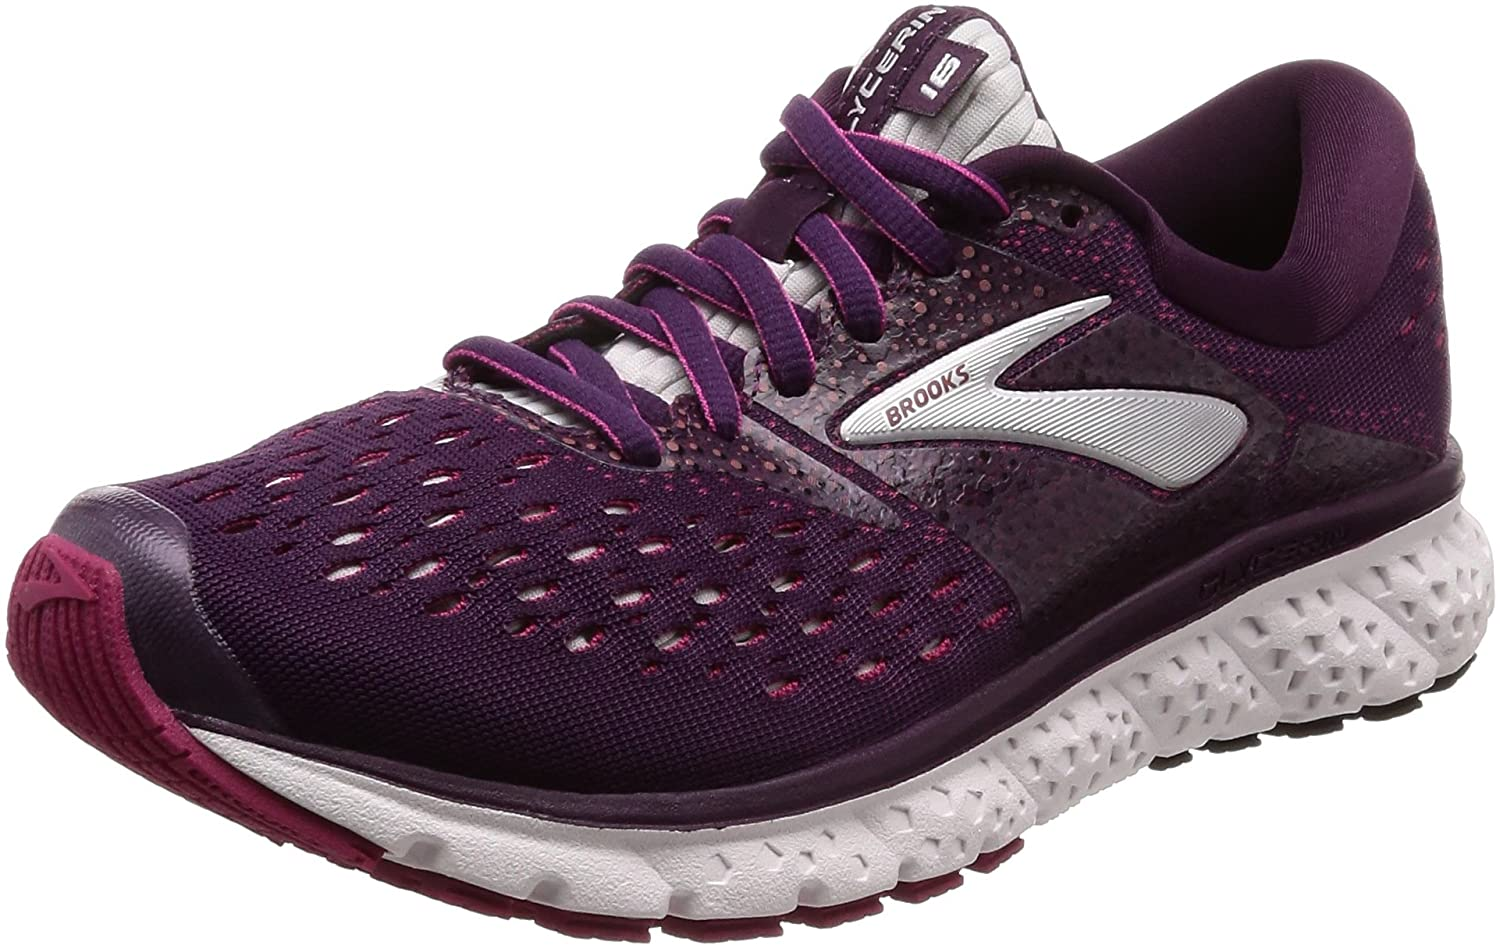 Top 5 Best Tennis Shoes for Back Pain Women's in 2020 | Brooks Glycerin 16